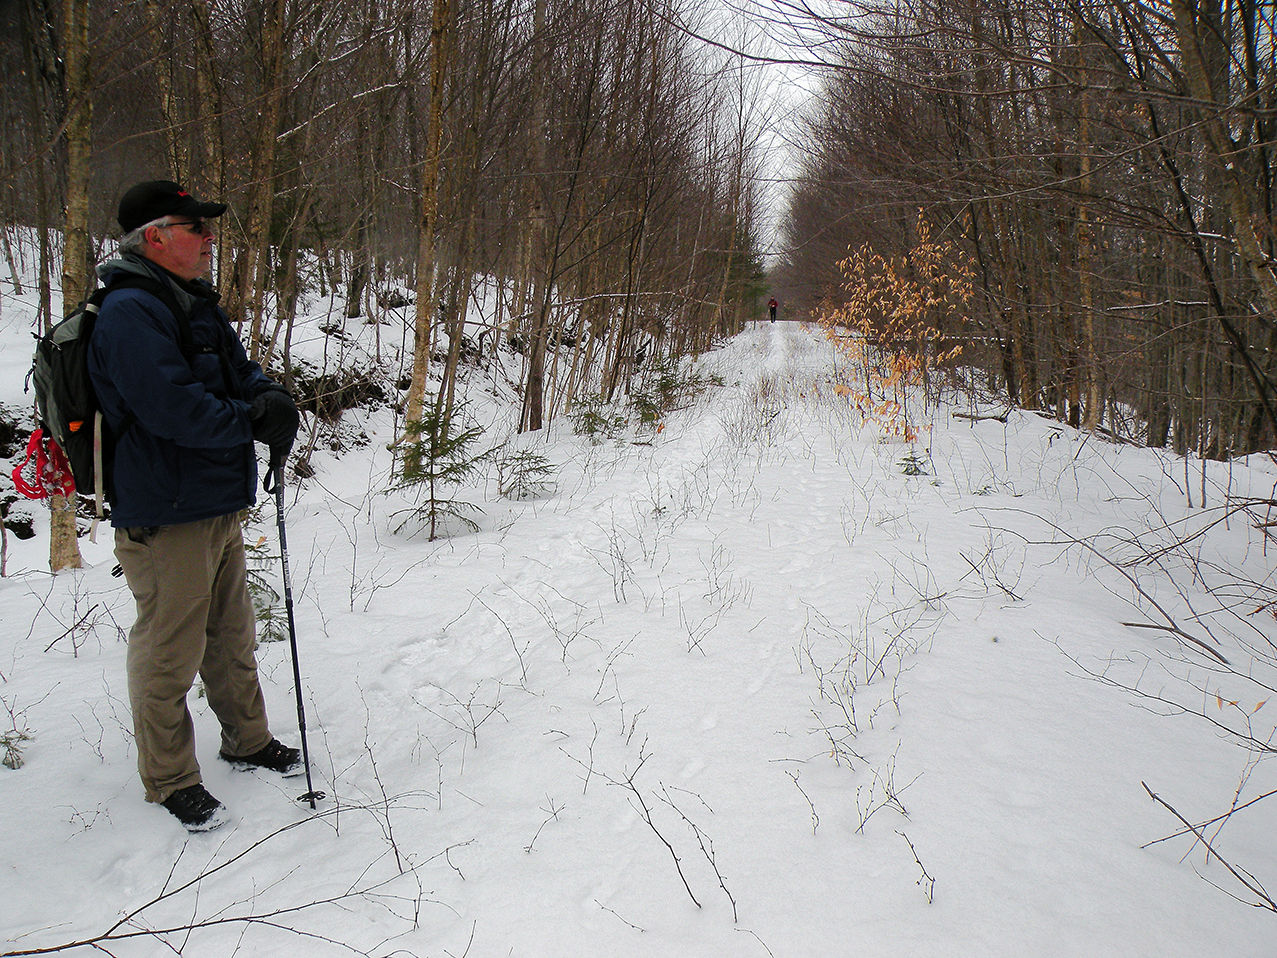 Hiking the South Shore trail.   Bill Ingersoll